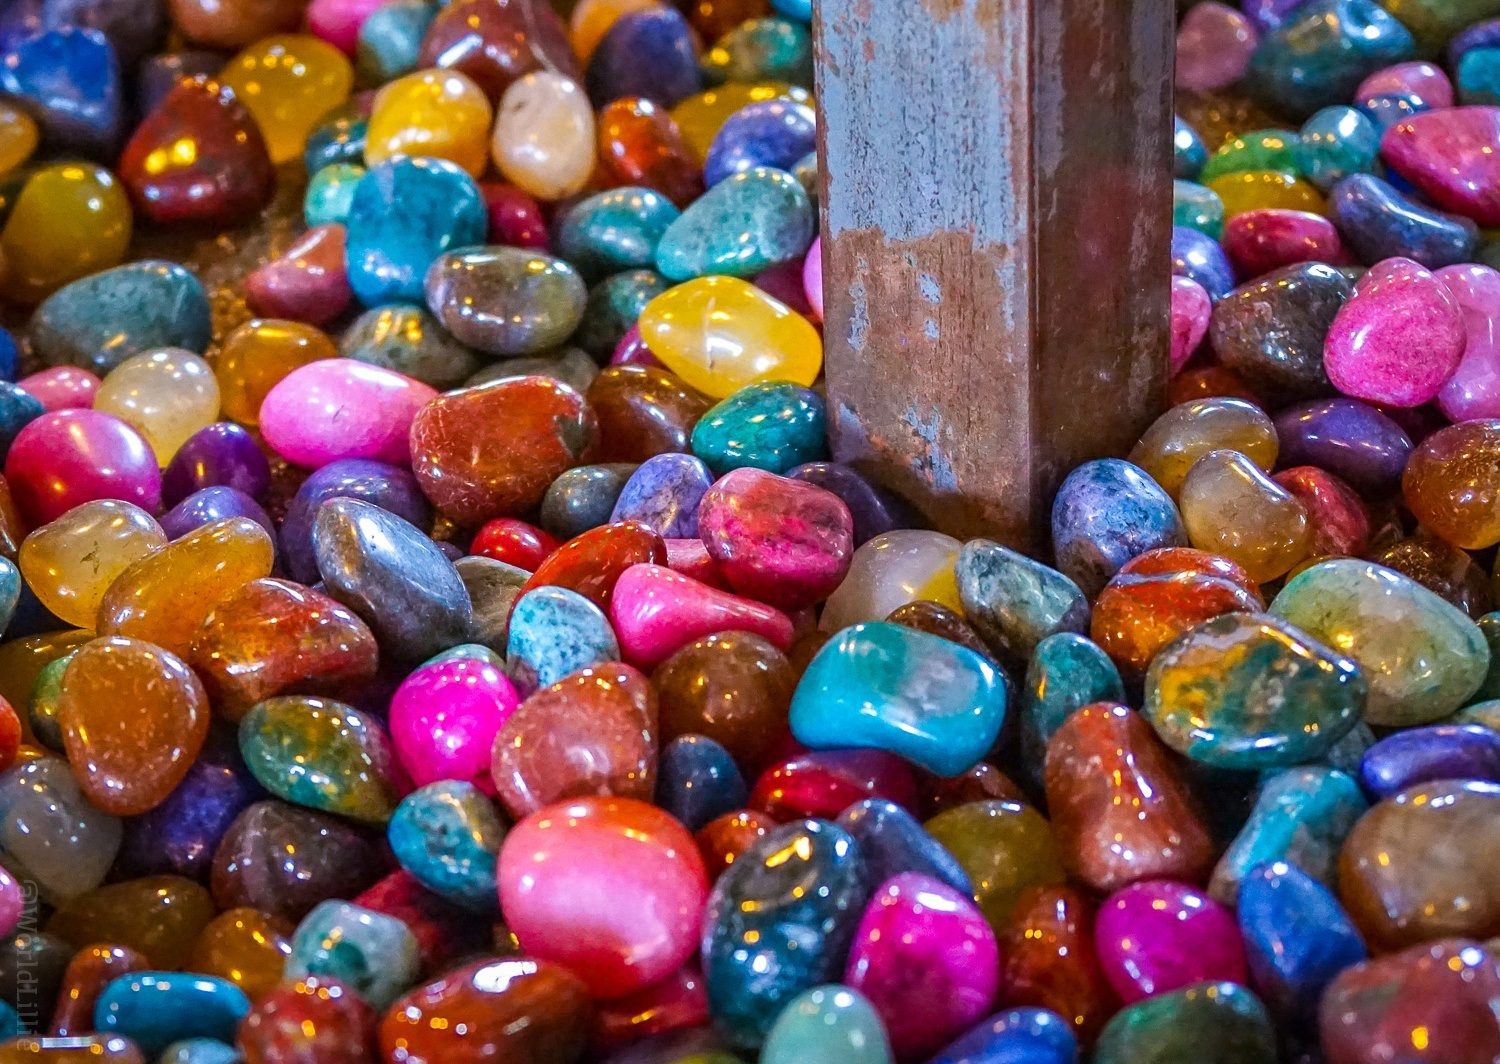 Rainbow colored rocks in an Ohiopyle country store.